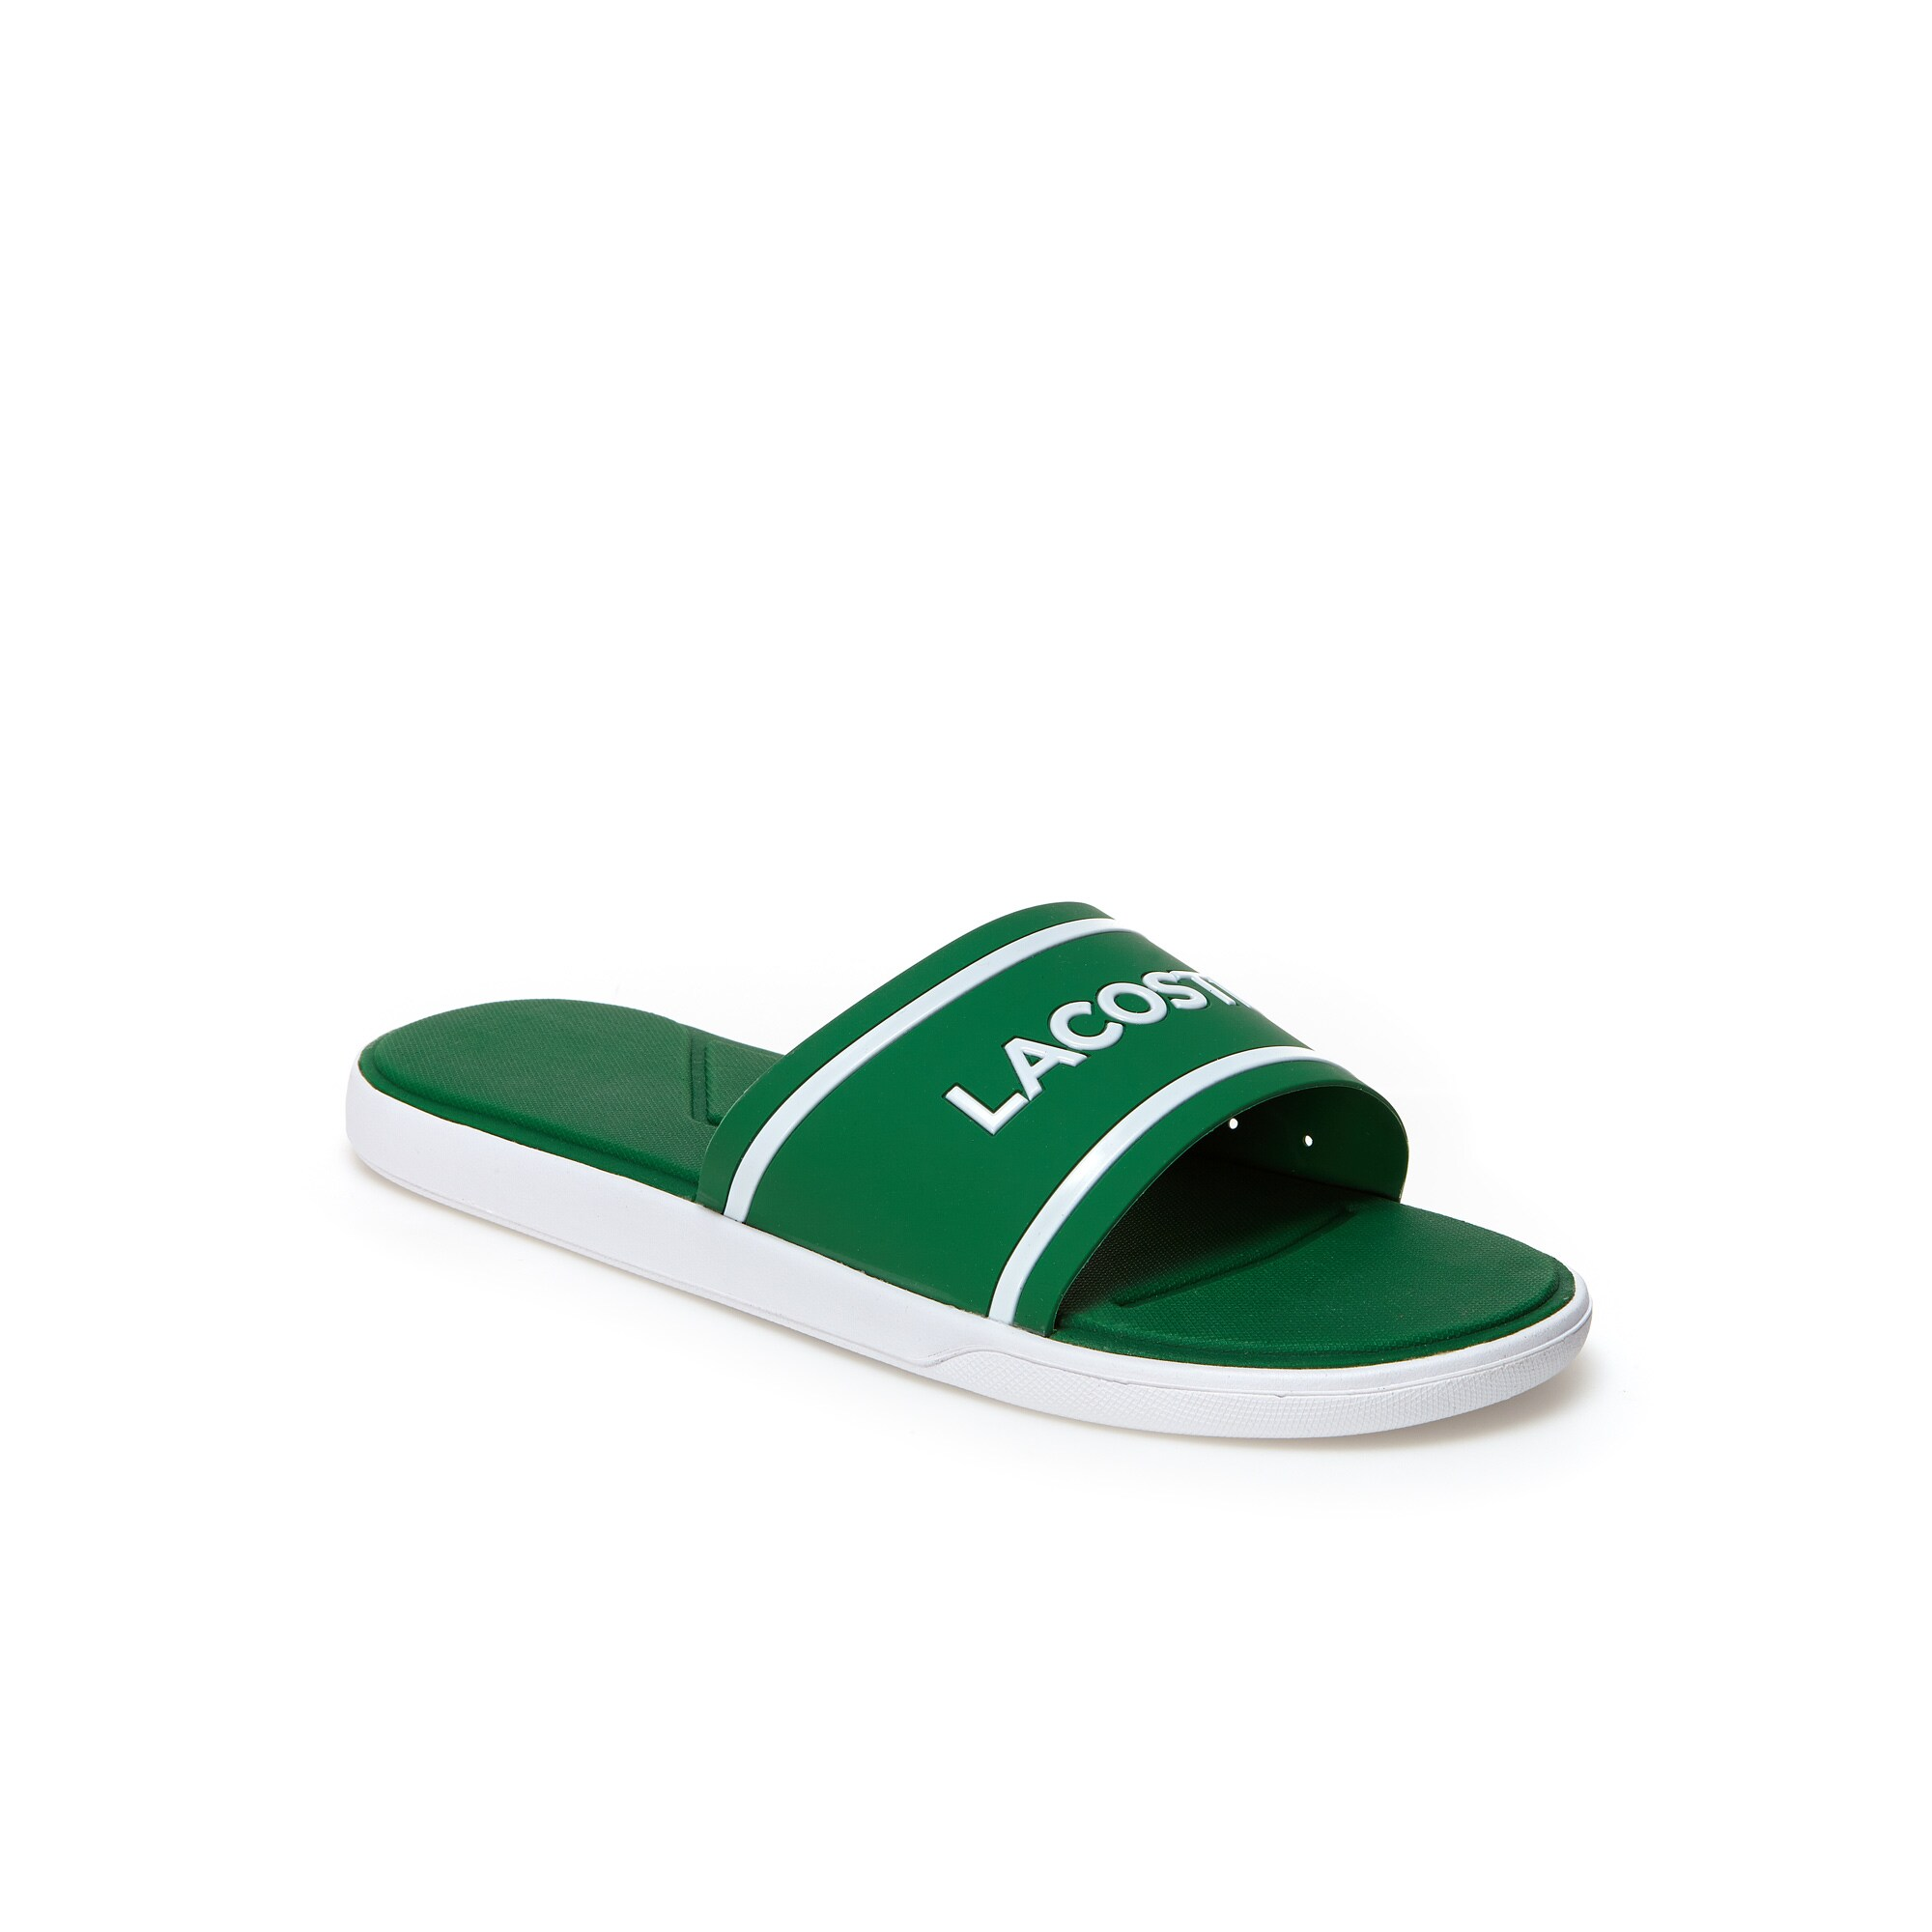 Men's Synthetic  and Mixed material L.30 Slides